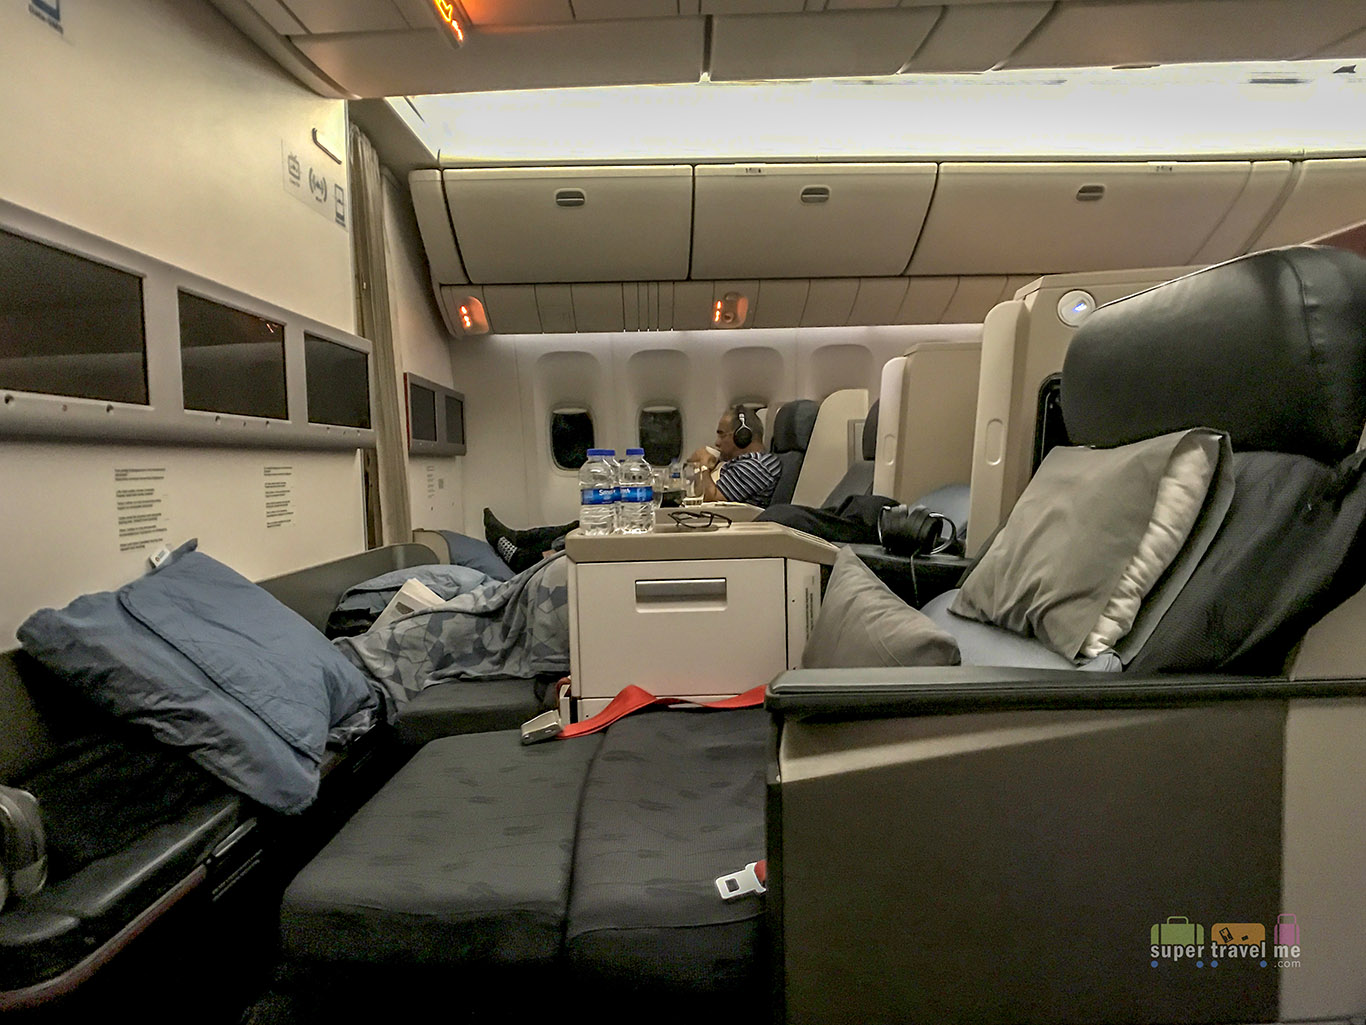 Turkish Airlines Business Class seat in B777-300ER 5681